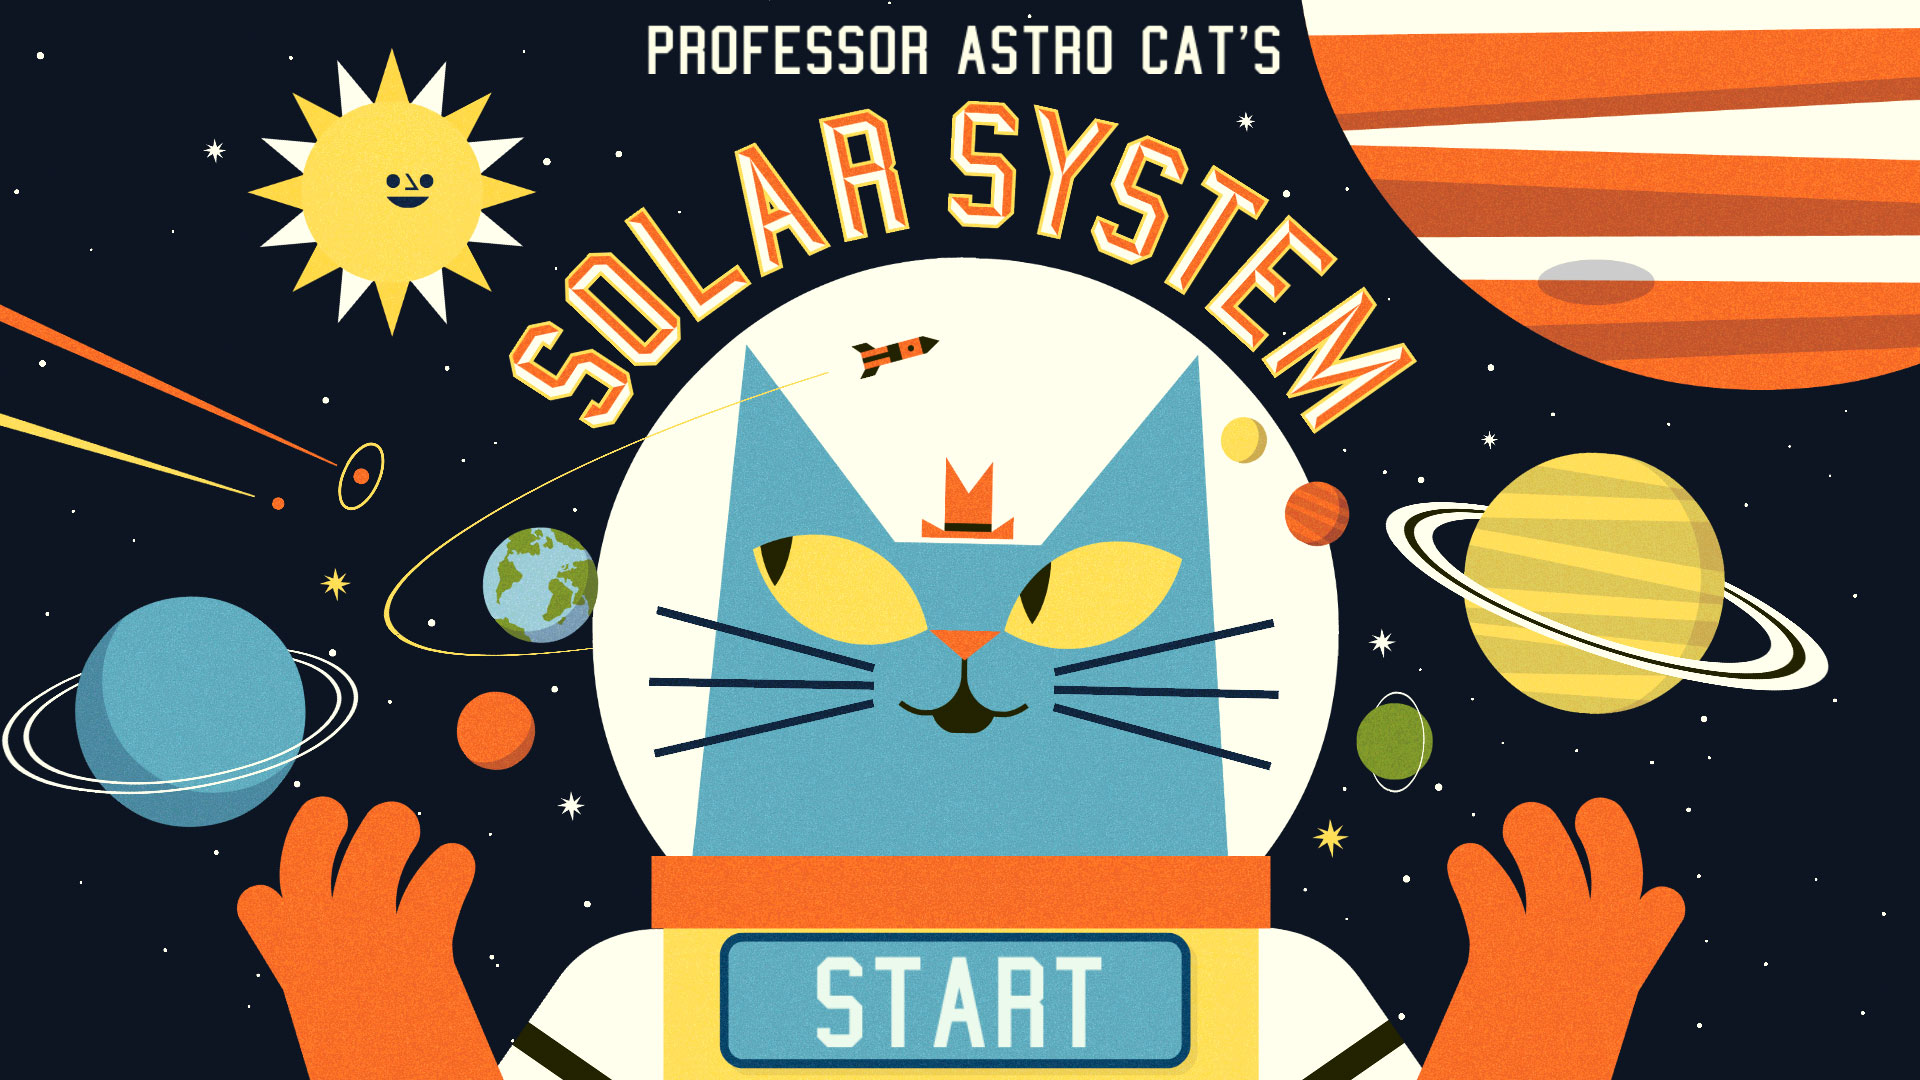 Professor Astro Cat's Solar System App title screen